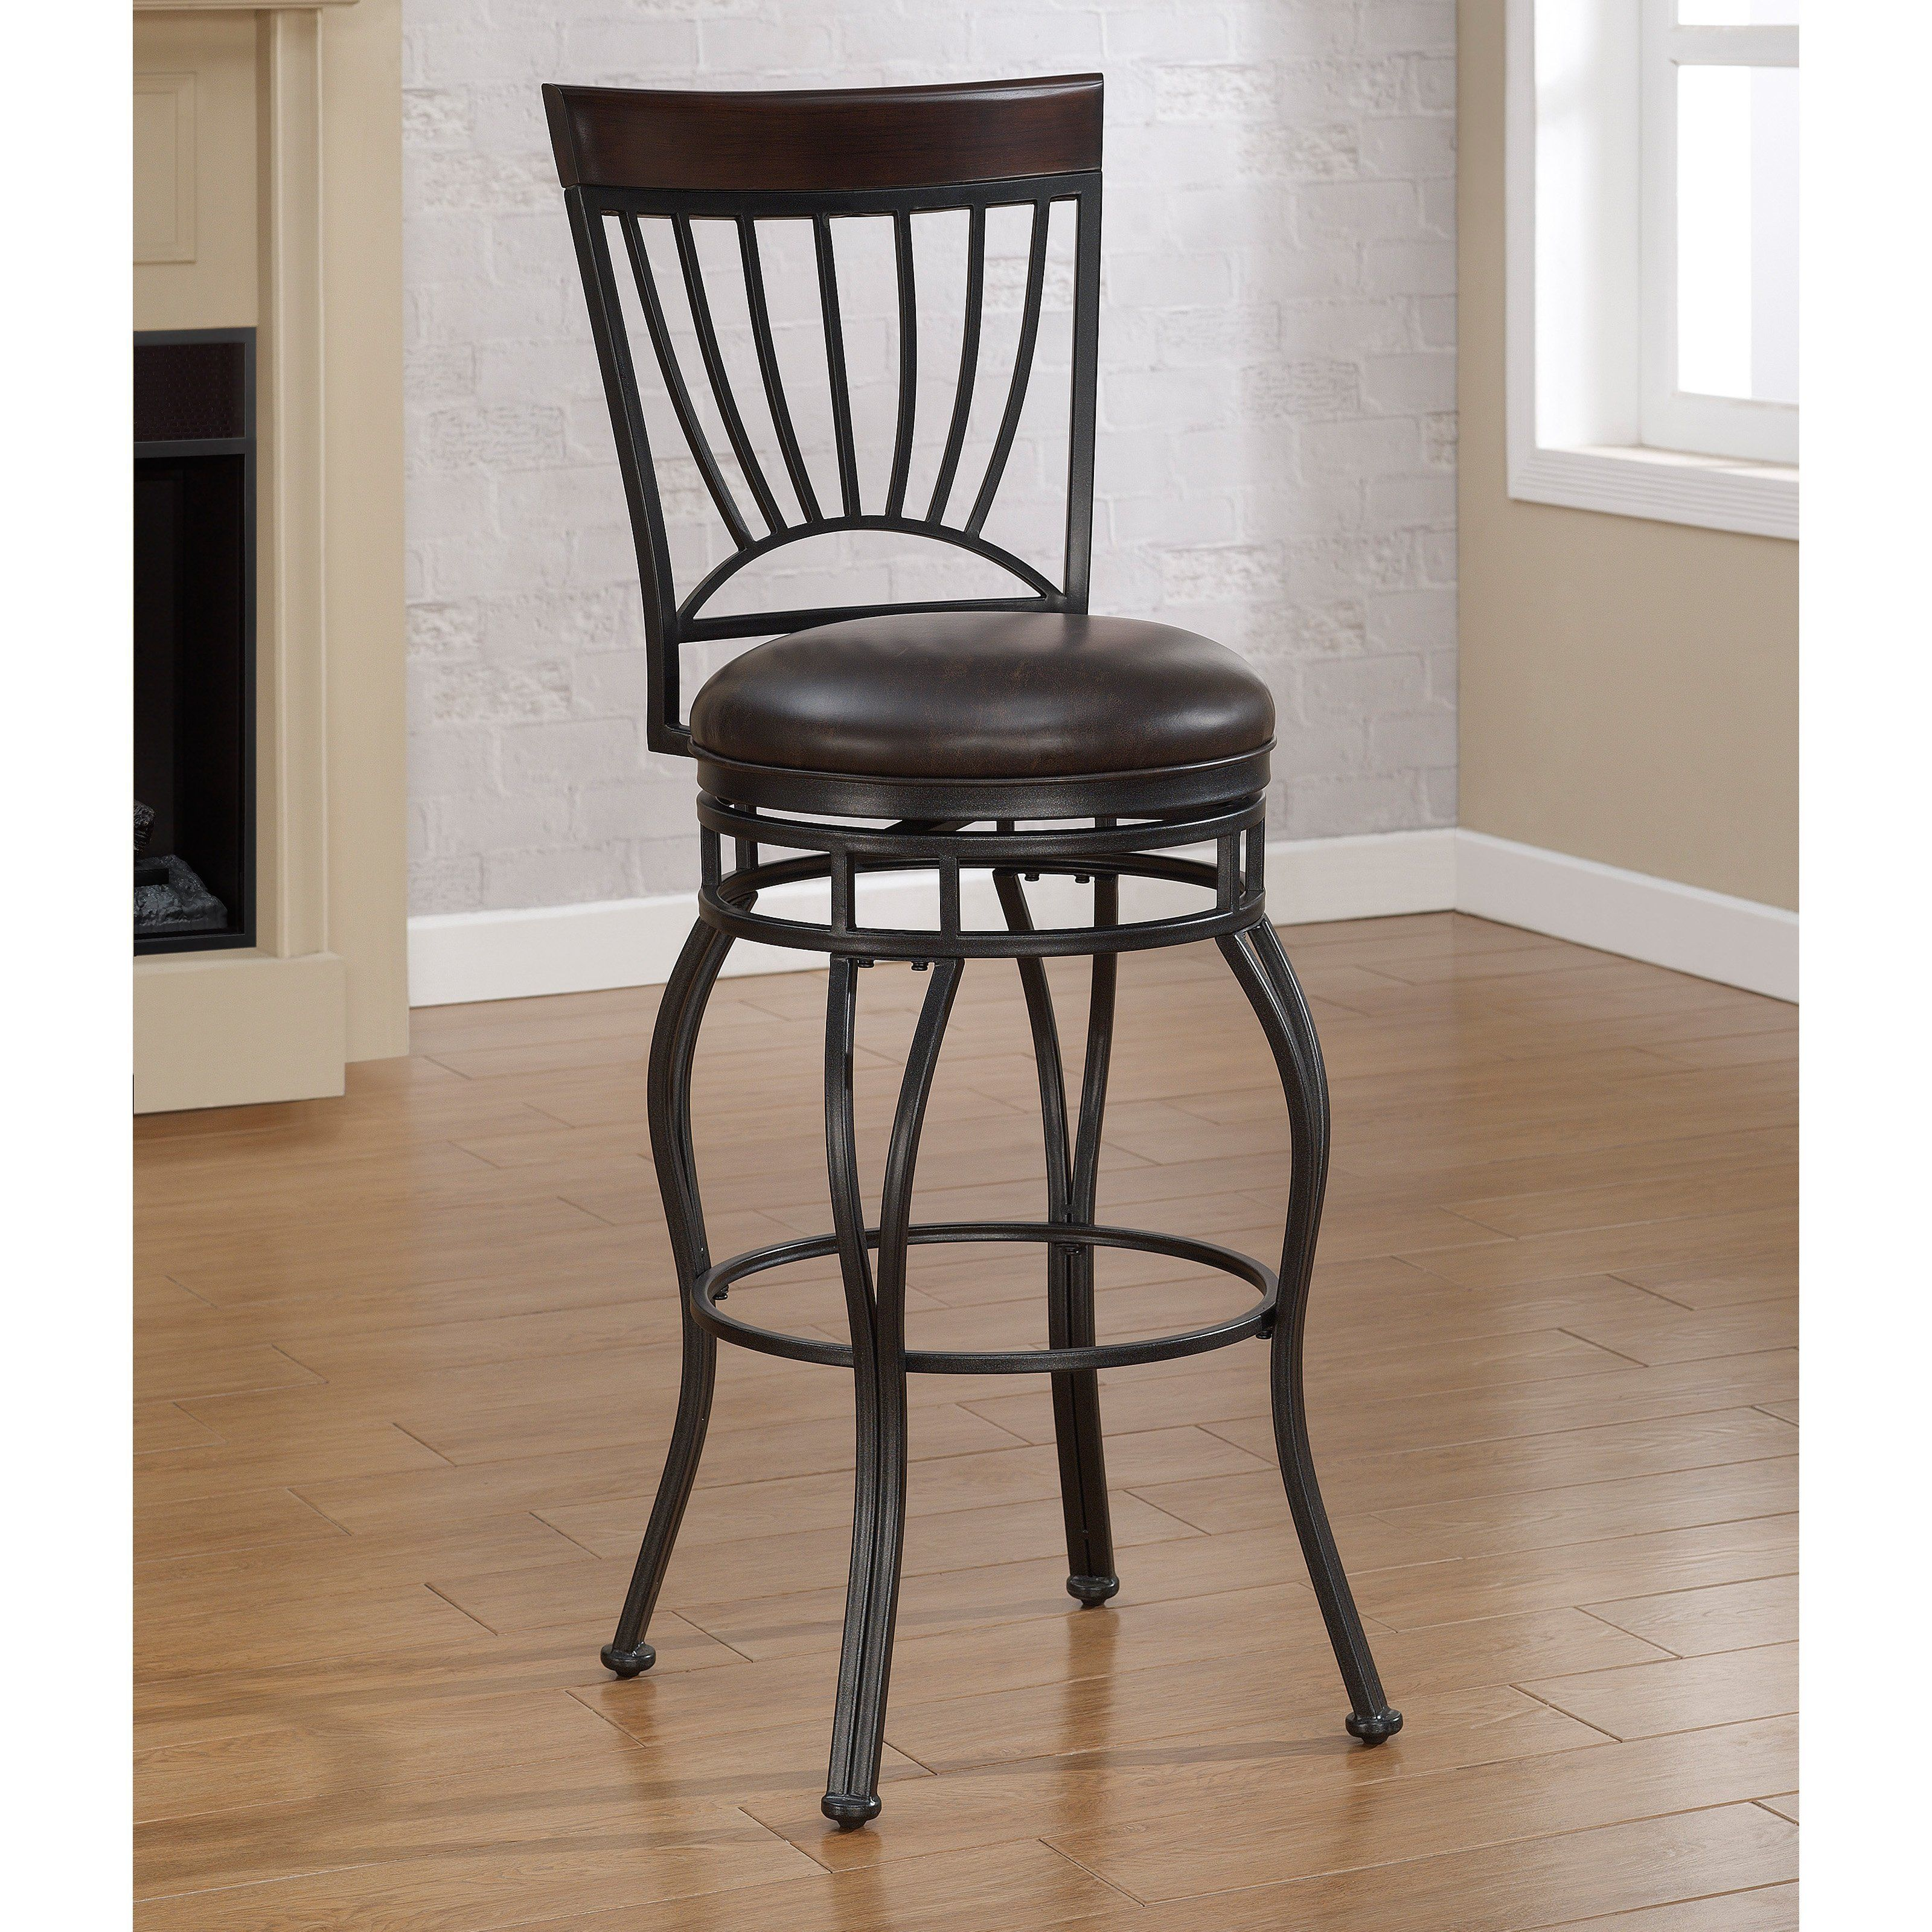 American woodcrafters horizon extra tall bar stool charcoal the eye catching american woodcrafters horizon extra tall bar stool charcoal features a